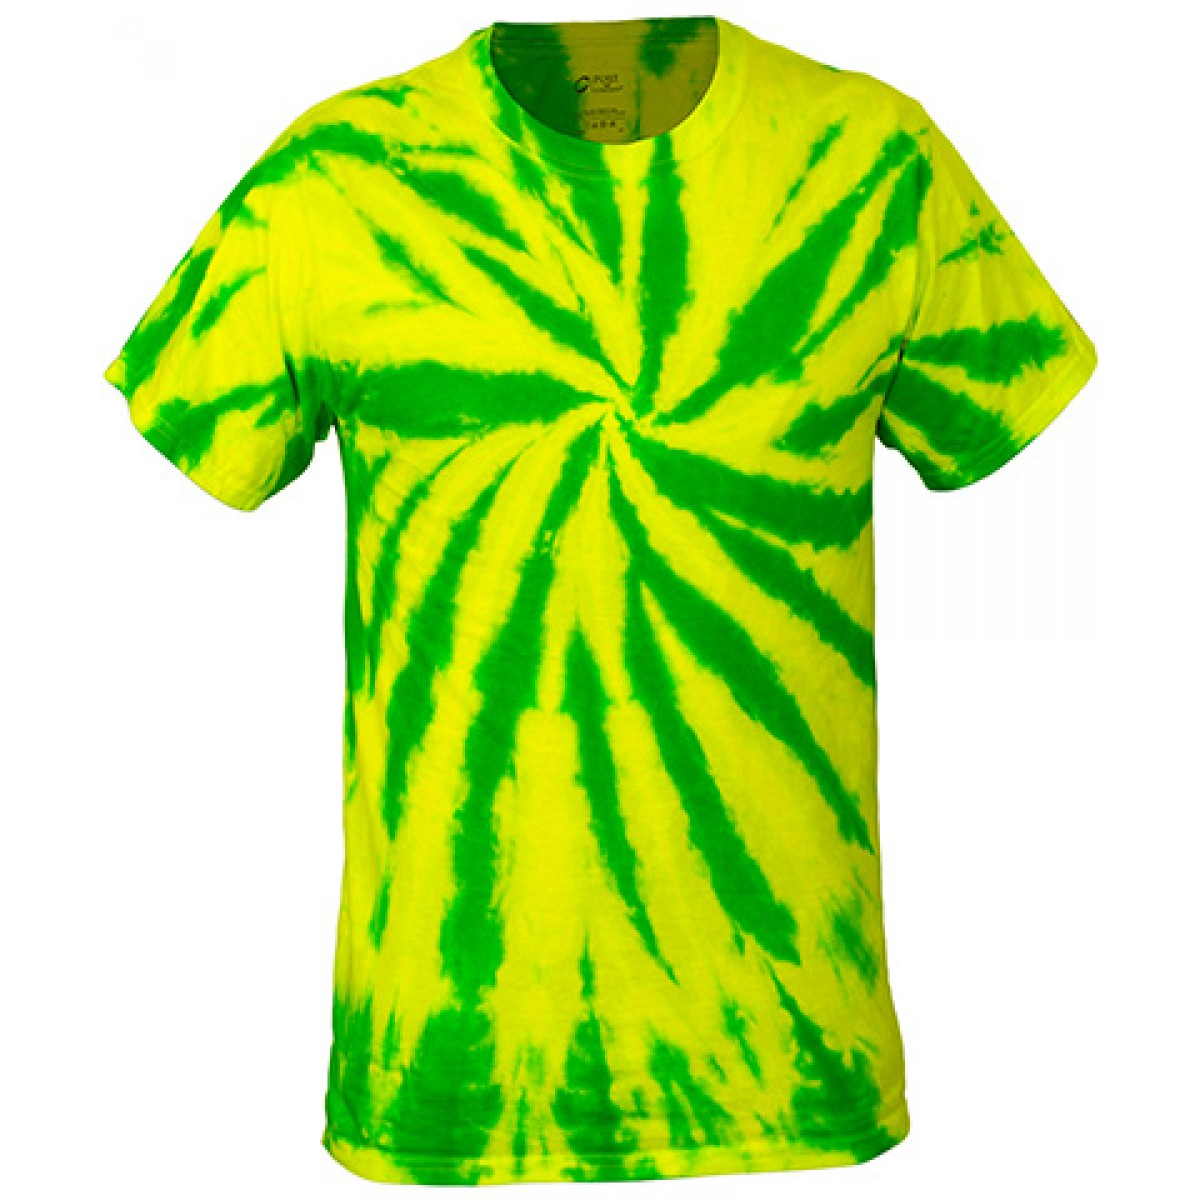 Multi-Color Tie-Dye Tee -Neon Green-3XL